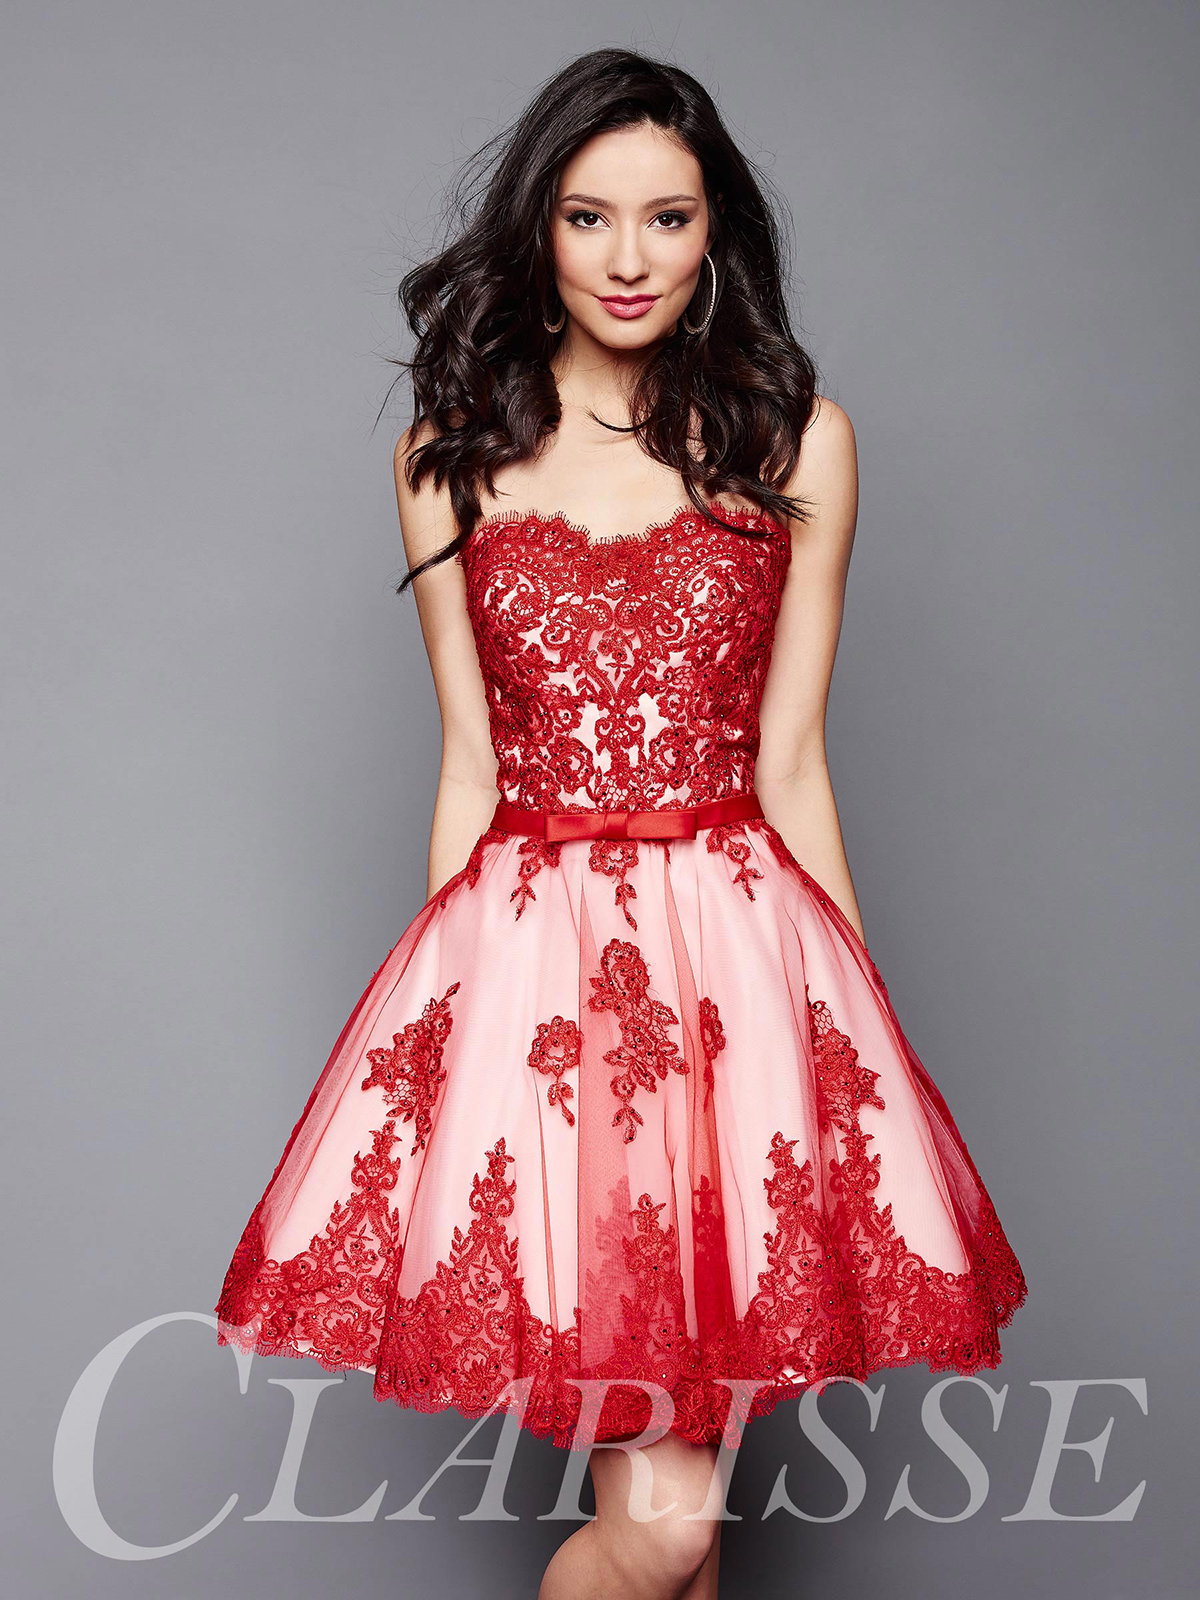 ccb8989379f1 Clarisse Homecoming Dress 3367